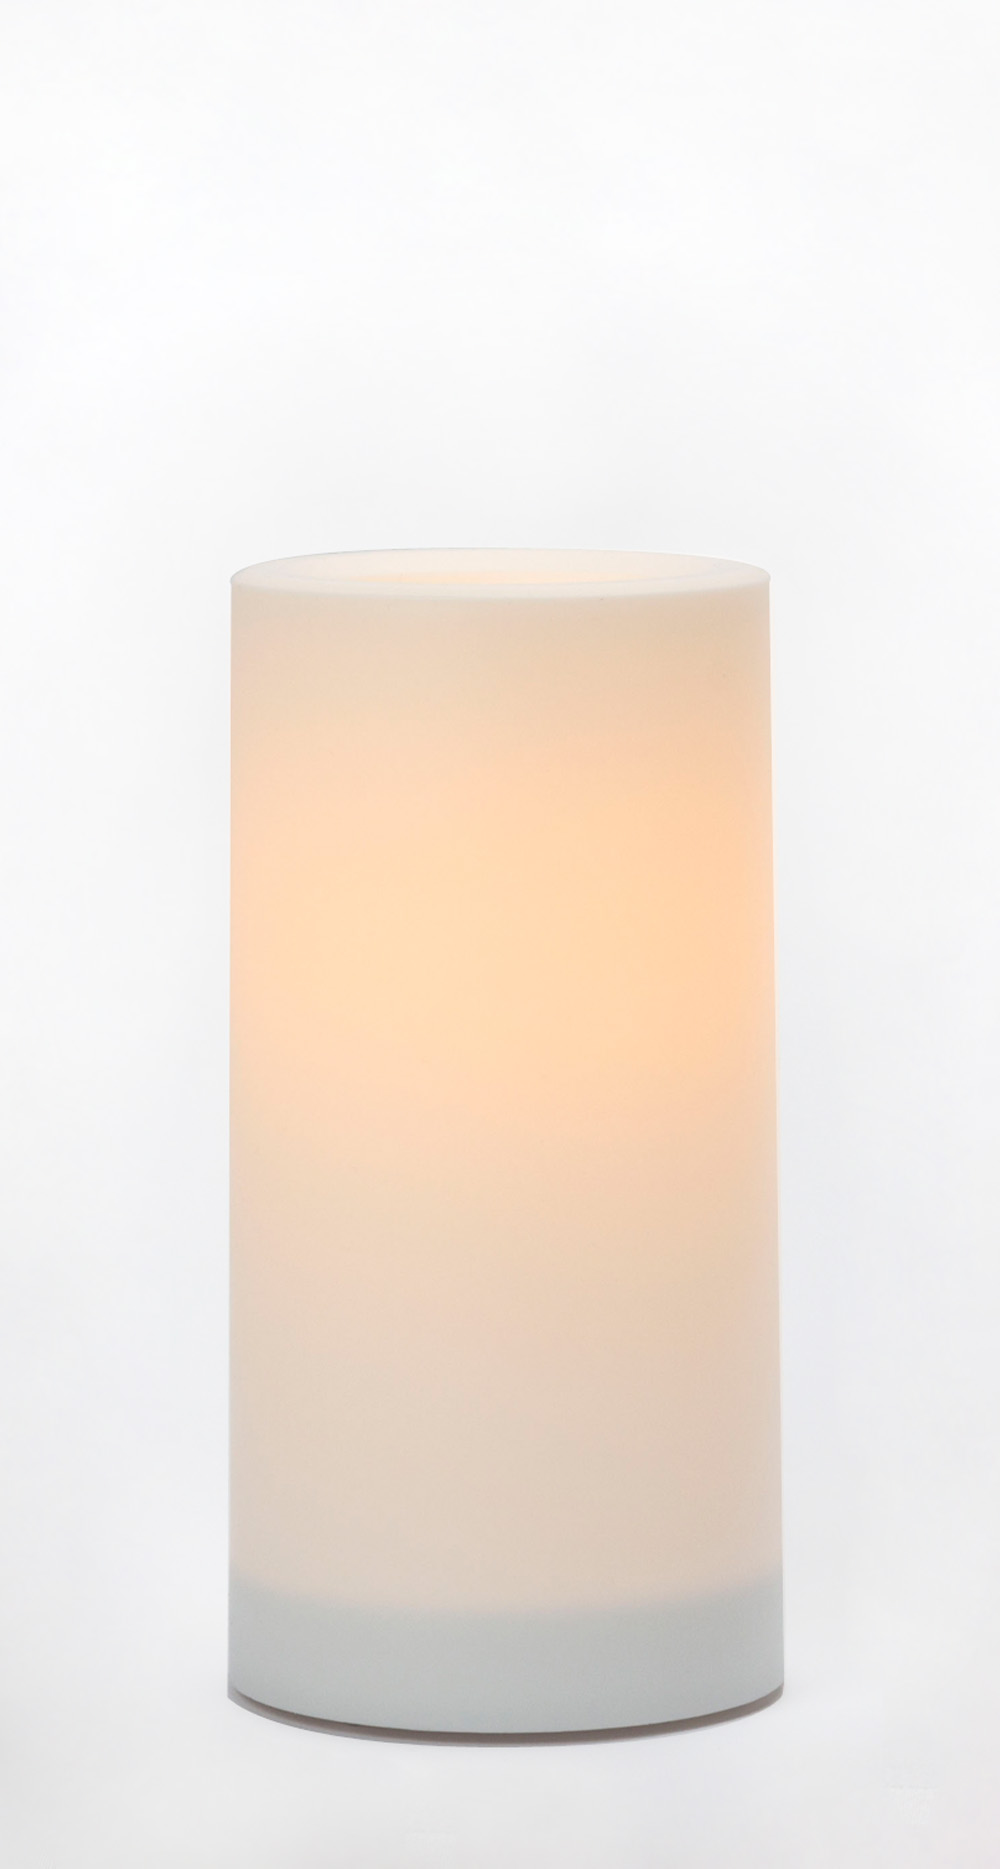 8x4 Inch Flameless Outdoor Pillar Candle with Timer - White